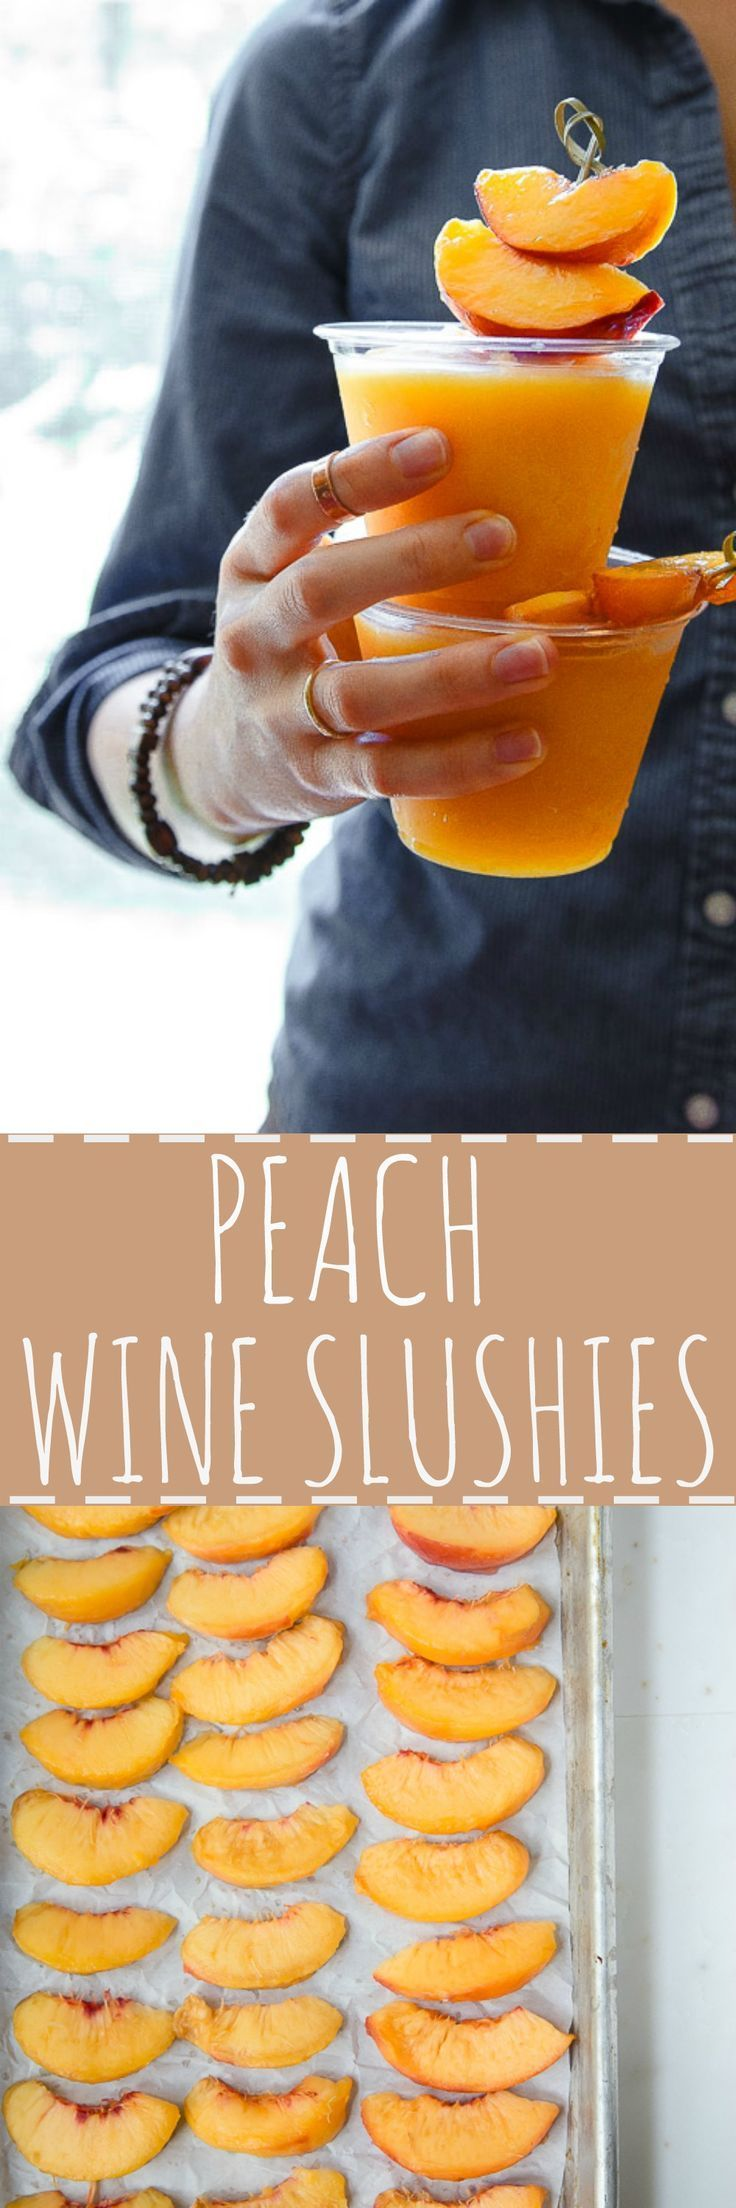 Peach Wine Slushies. Use any kind of frozen fruit and any kind of wine. I love them with peaches and sweet Riesling! @dessertfortwo (sweet cocktails girls night)